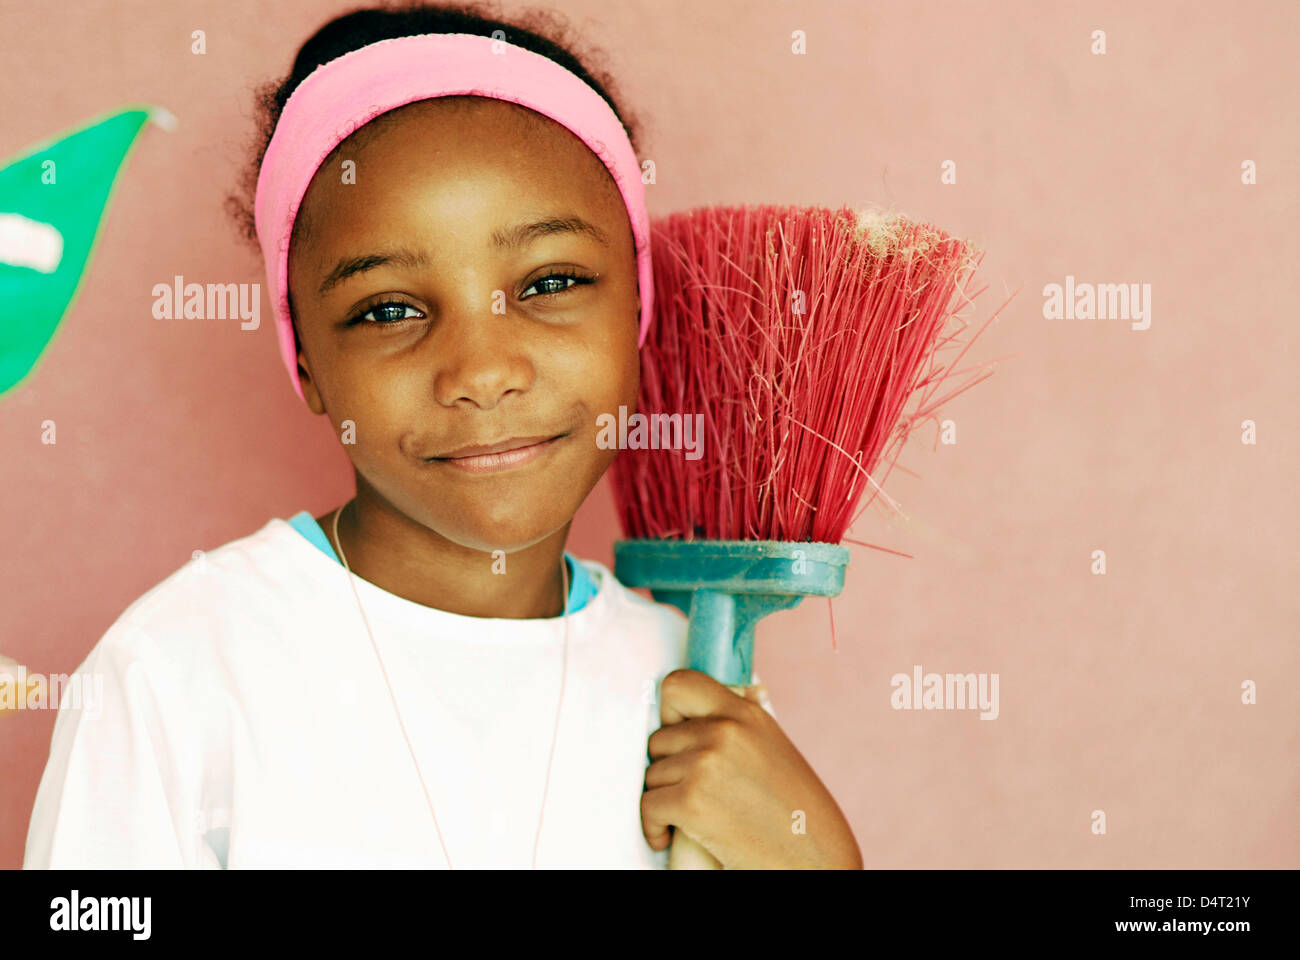 Africa, Angola, Luanda, portrait of an innocent African girl in a pink headband holding a red broom in front of - Stock Image